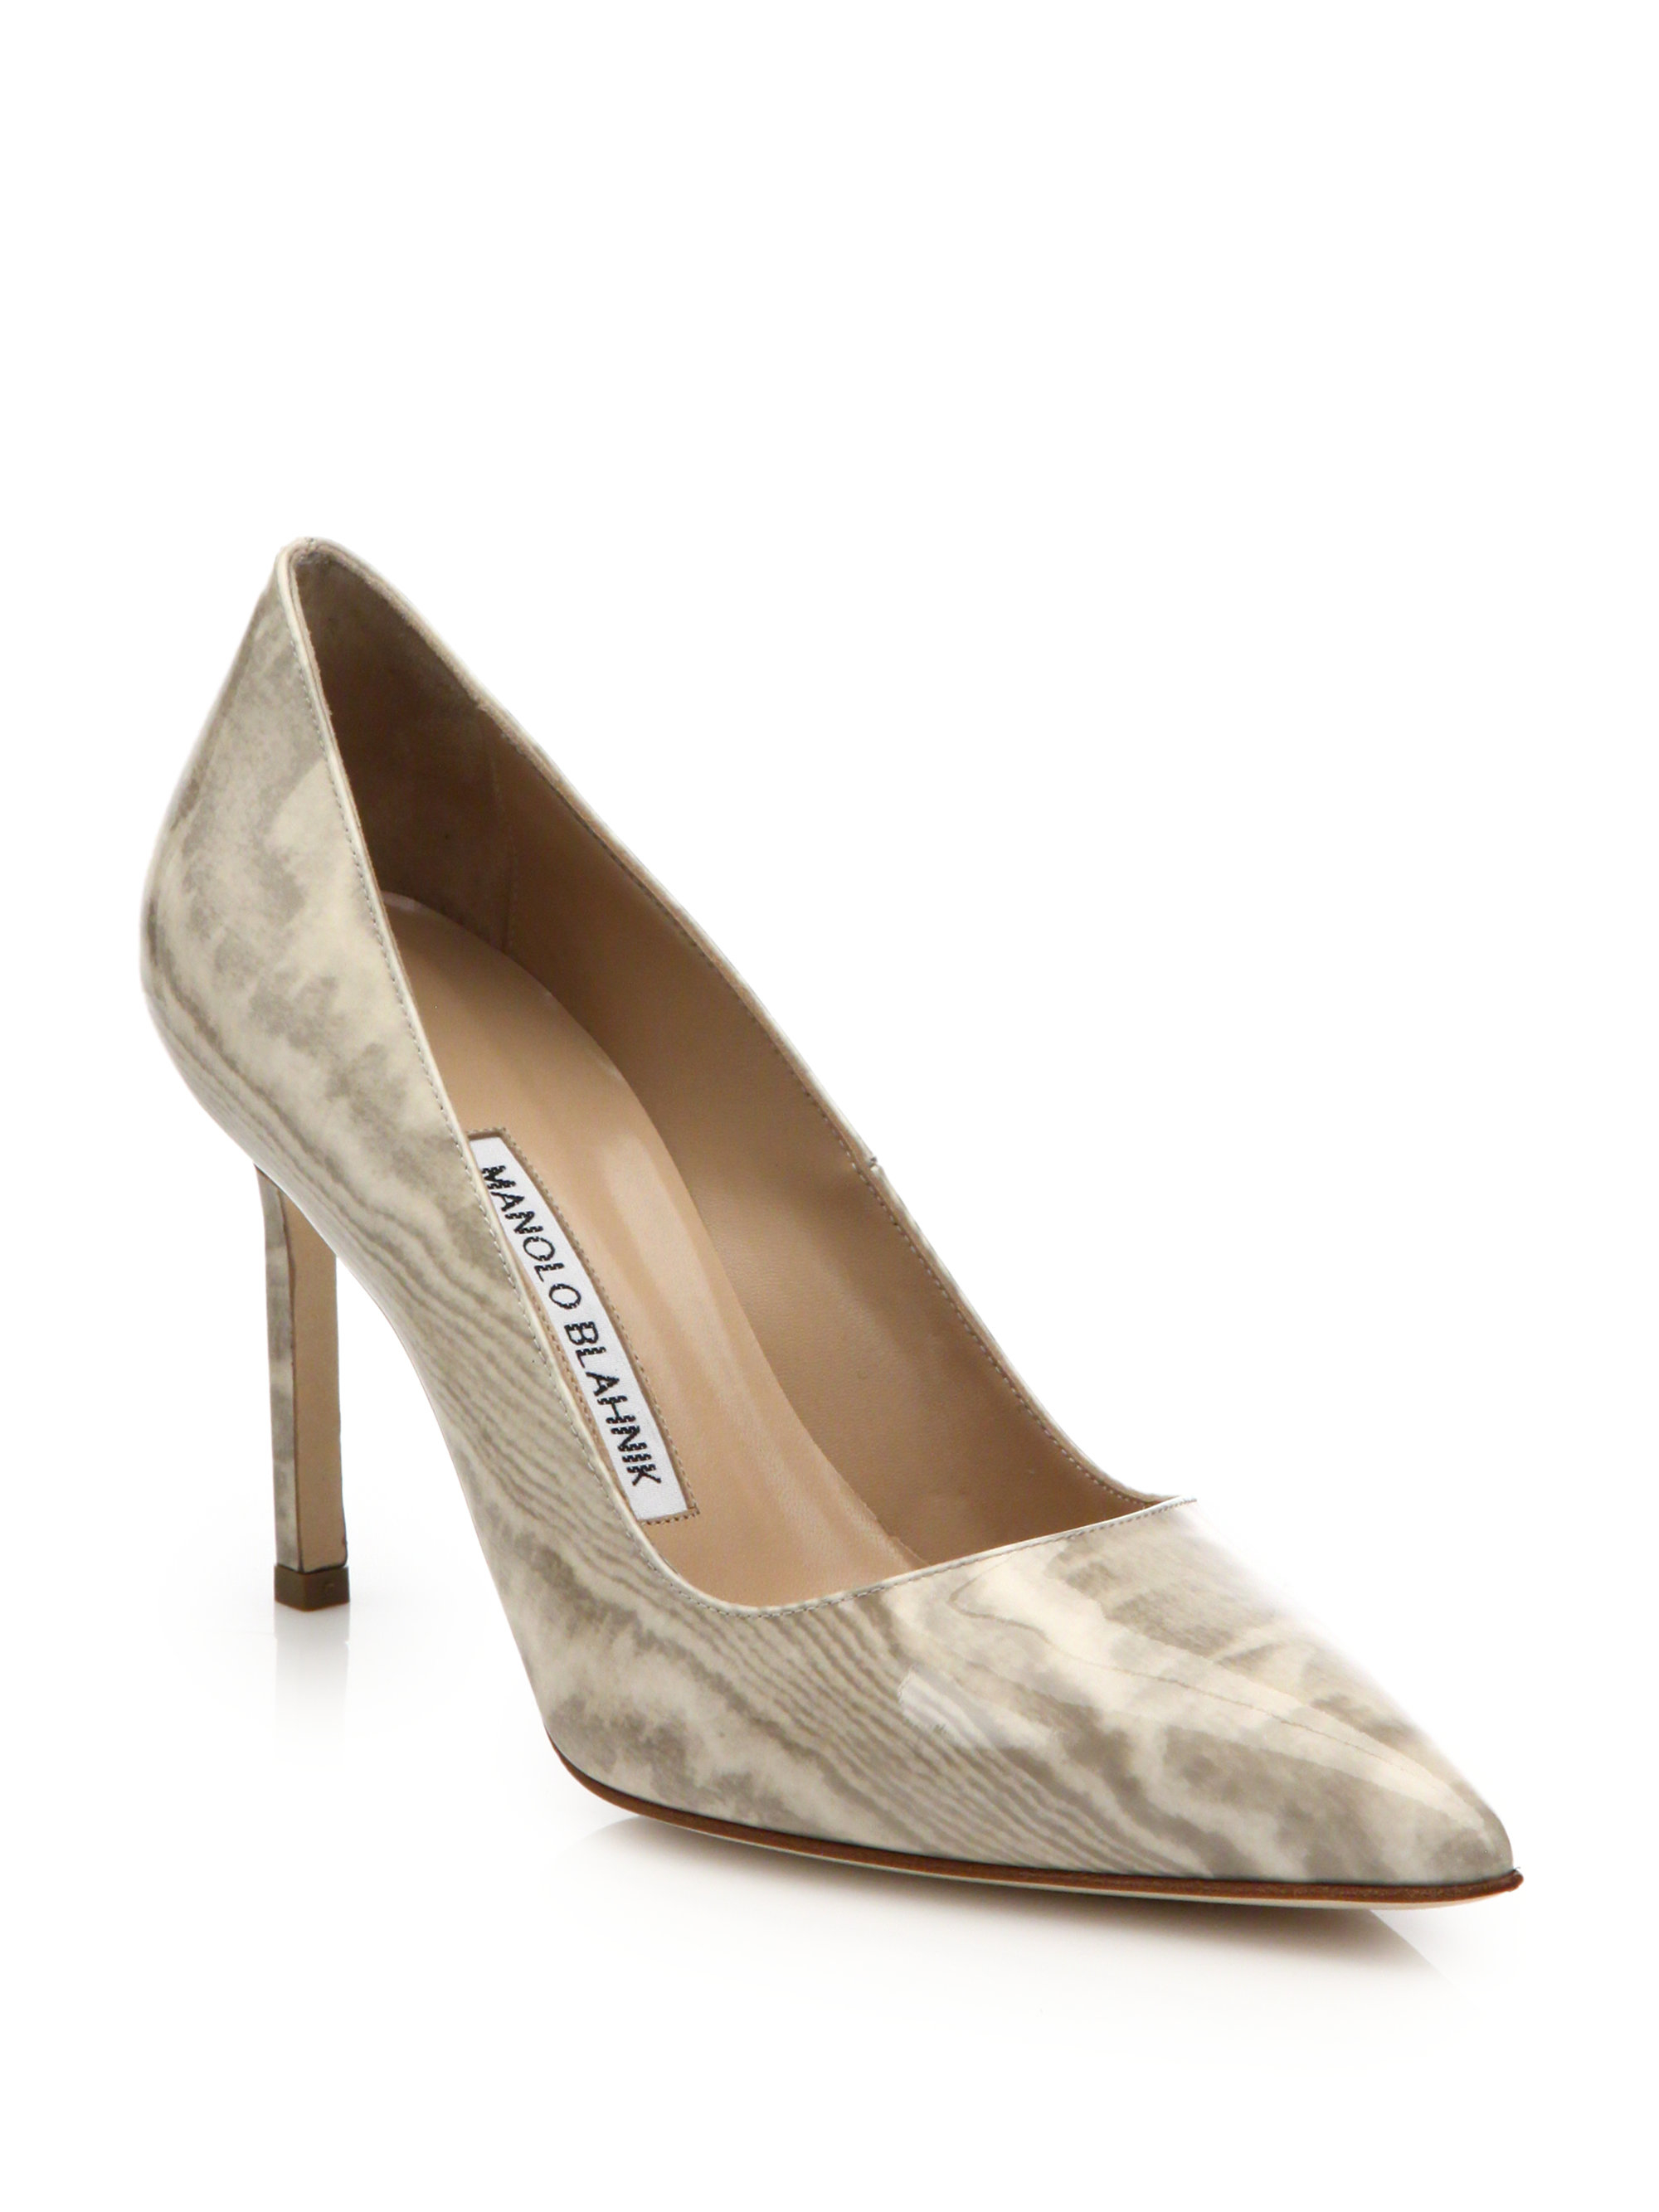 Lyst Manolo Blahnik Bb Patent Leather Point Toe Pumps In